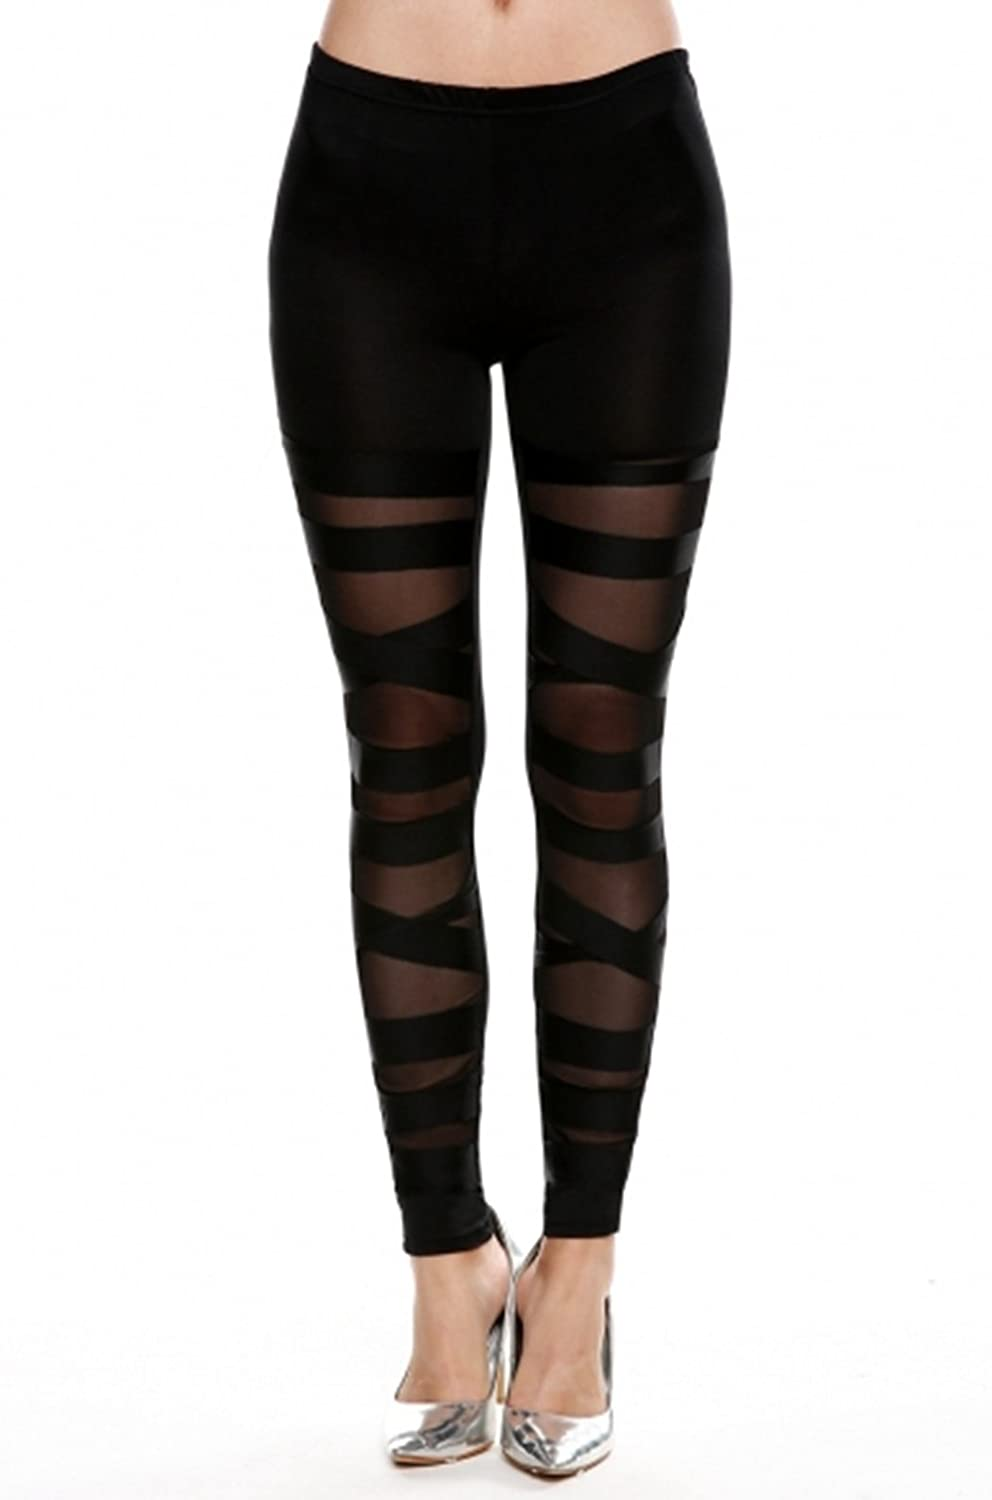 b51558ca6ef Tp Sky Women's Slim Stretch Ripped Bandage Tights Leggings Pants Black at  Amazon Women's Clothing store: